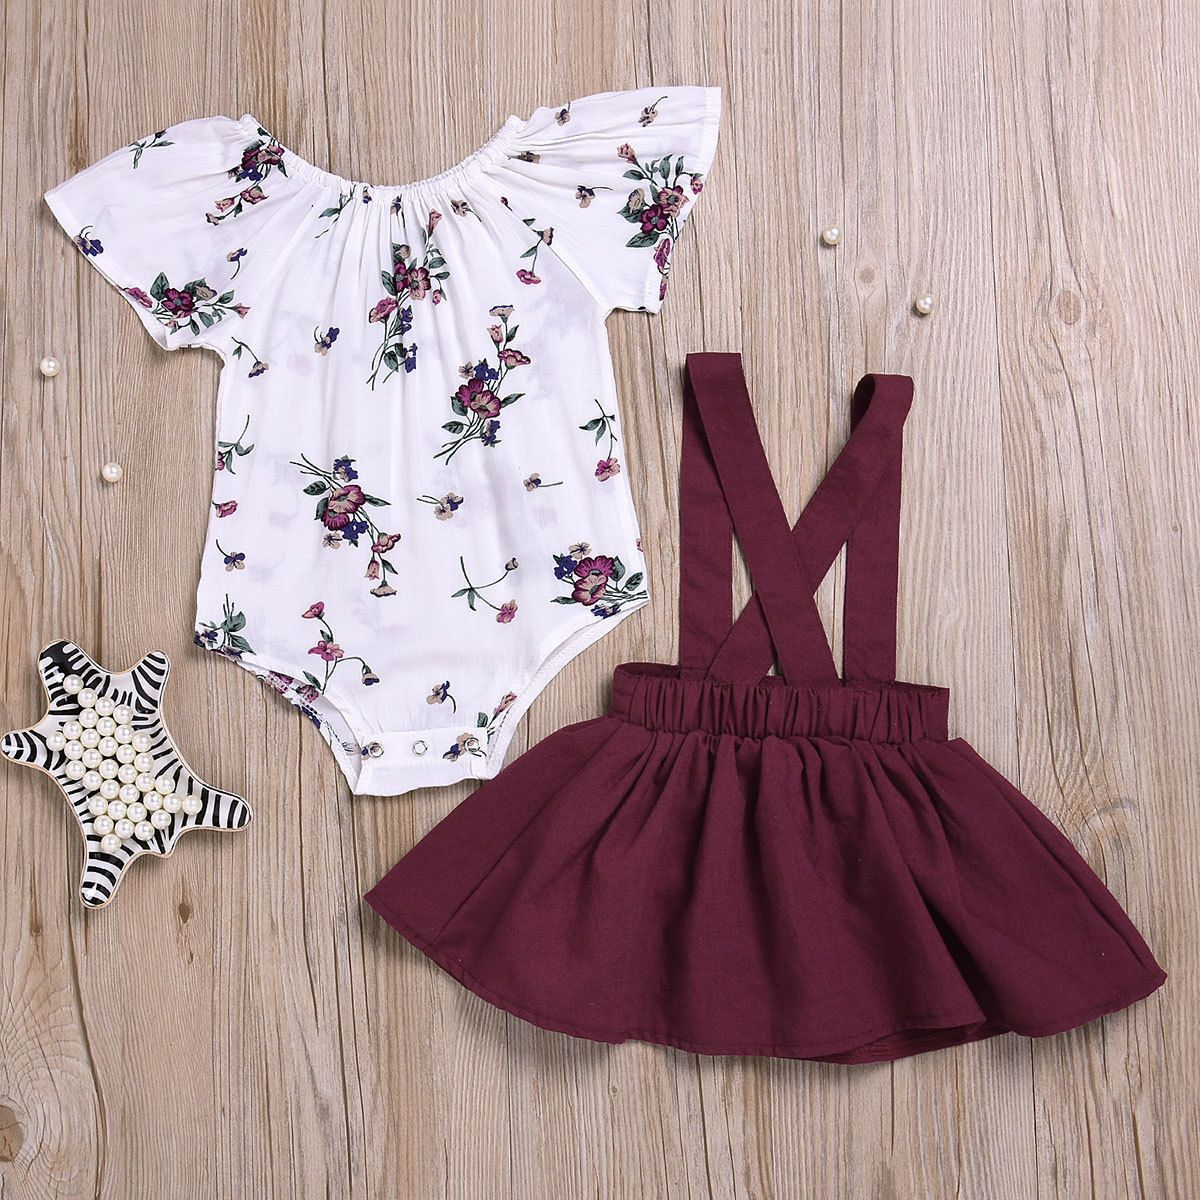 Red Ruffle Dress Summer Outfits 1-5T 2PCS Toddler Girl Skirt Sets Off-The-Shoulder Sets Embroidery Rose Top